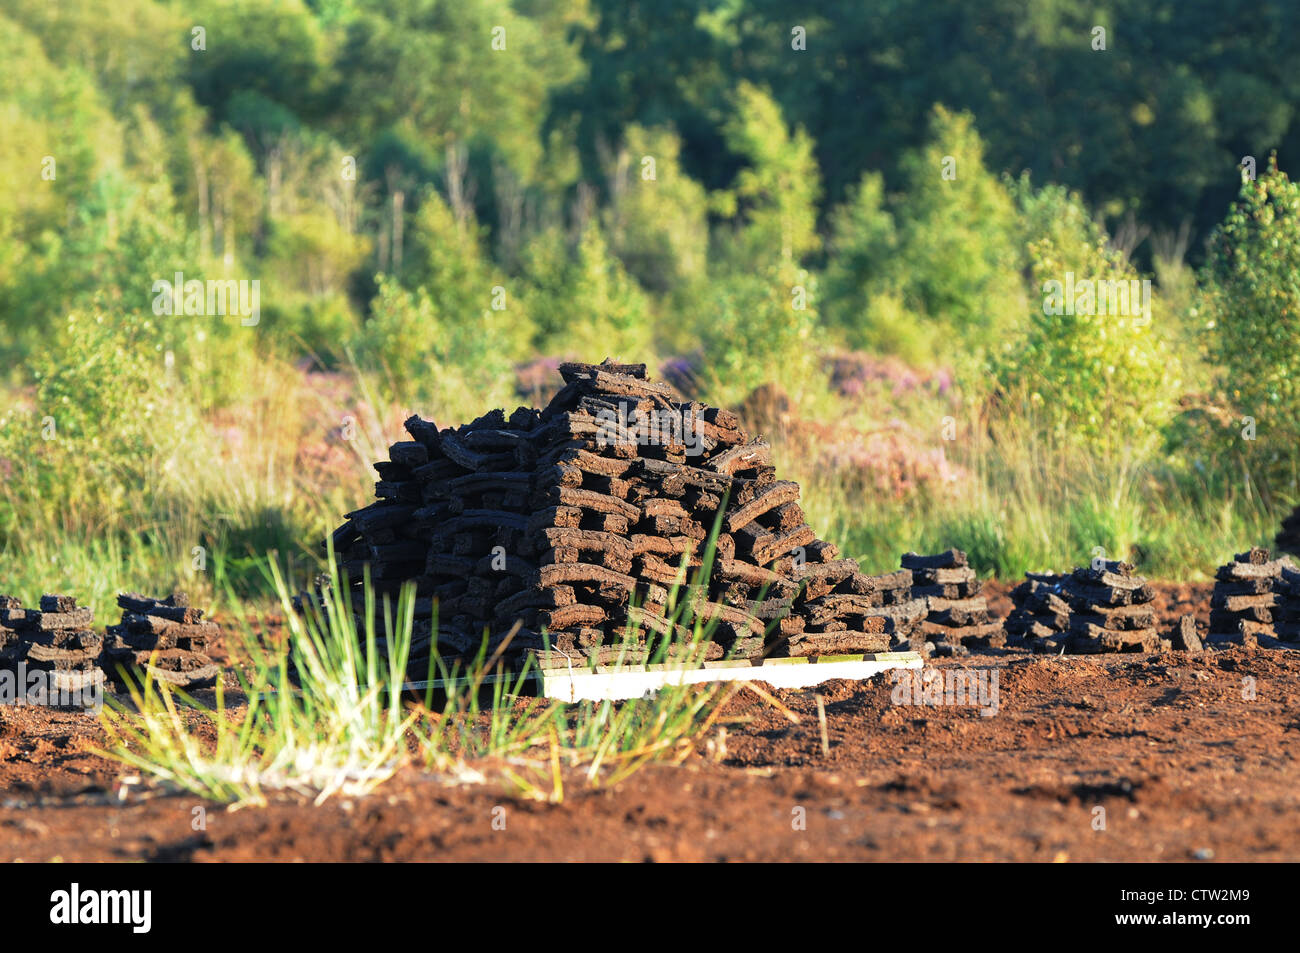 Sods of turf stacked to dry on, Emlagh Bog, Oristown, Kells, County Meath, Ireland - Stock Image